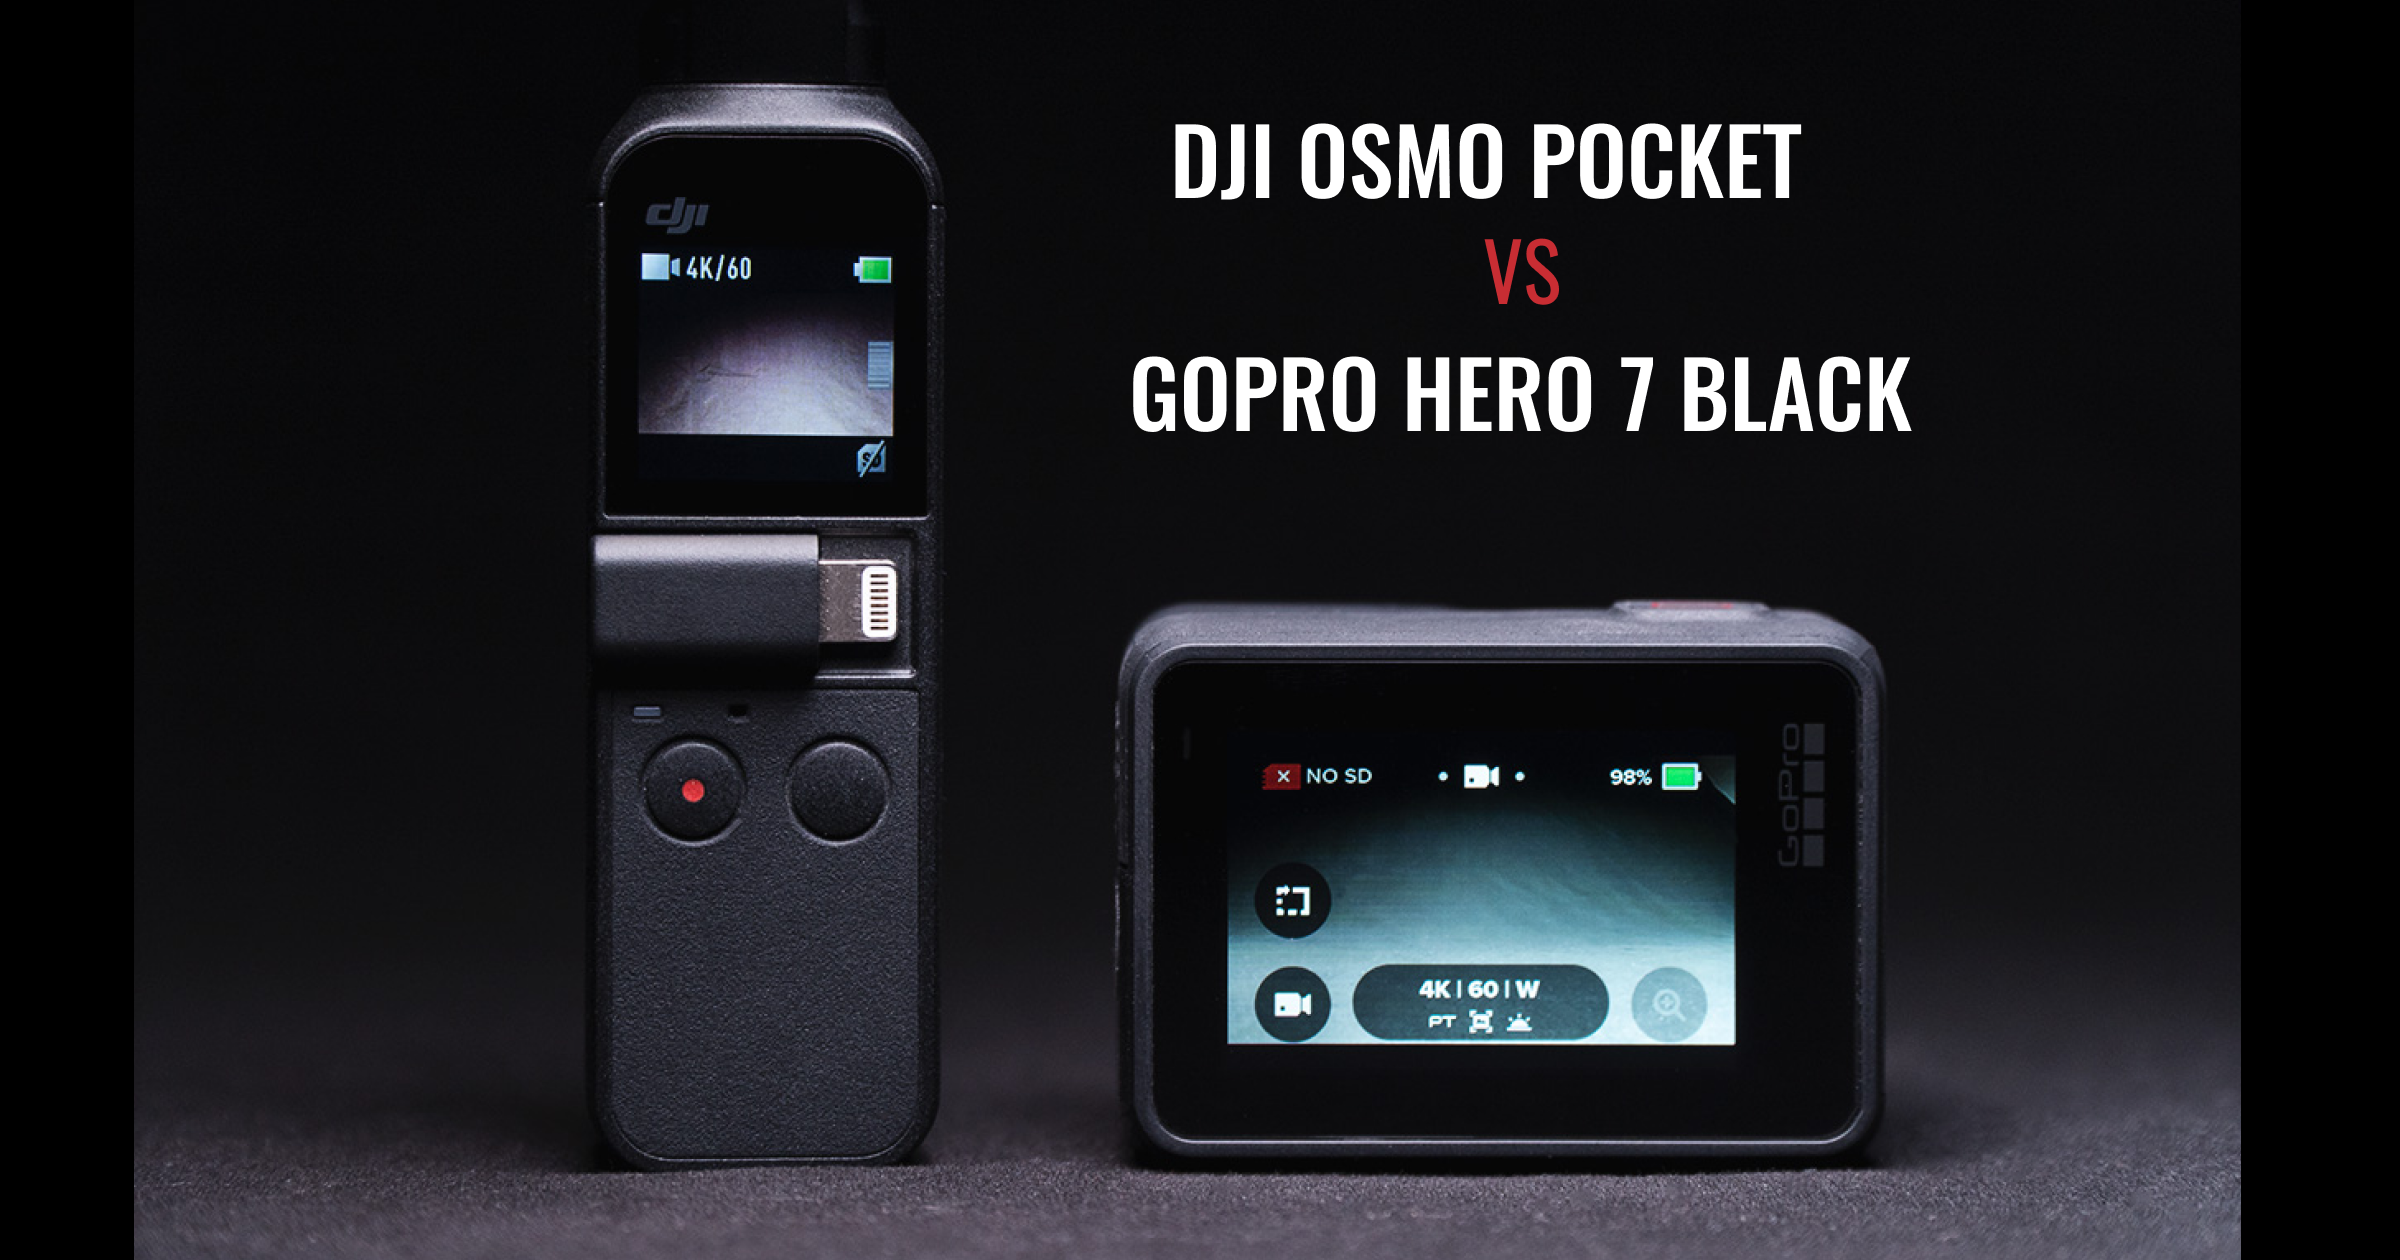 dji osmo pocket vs gopro hero 7 black